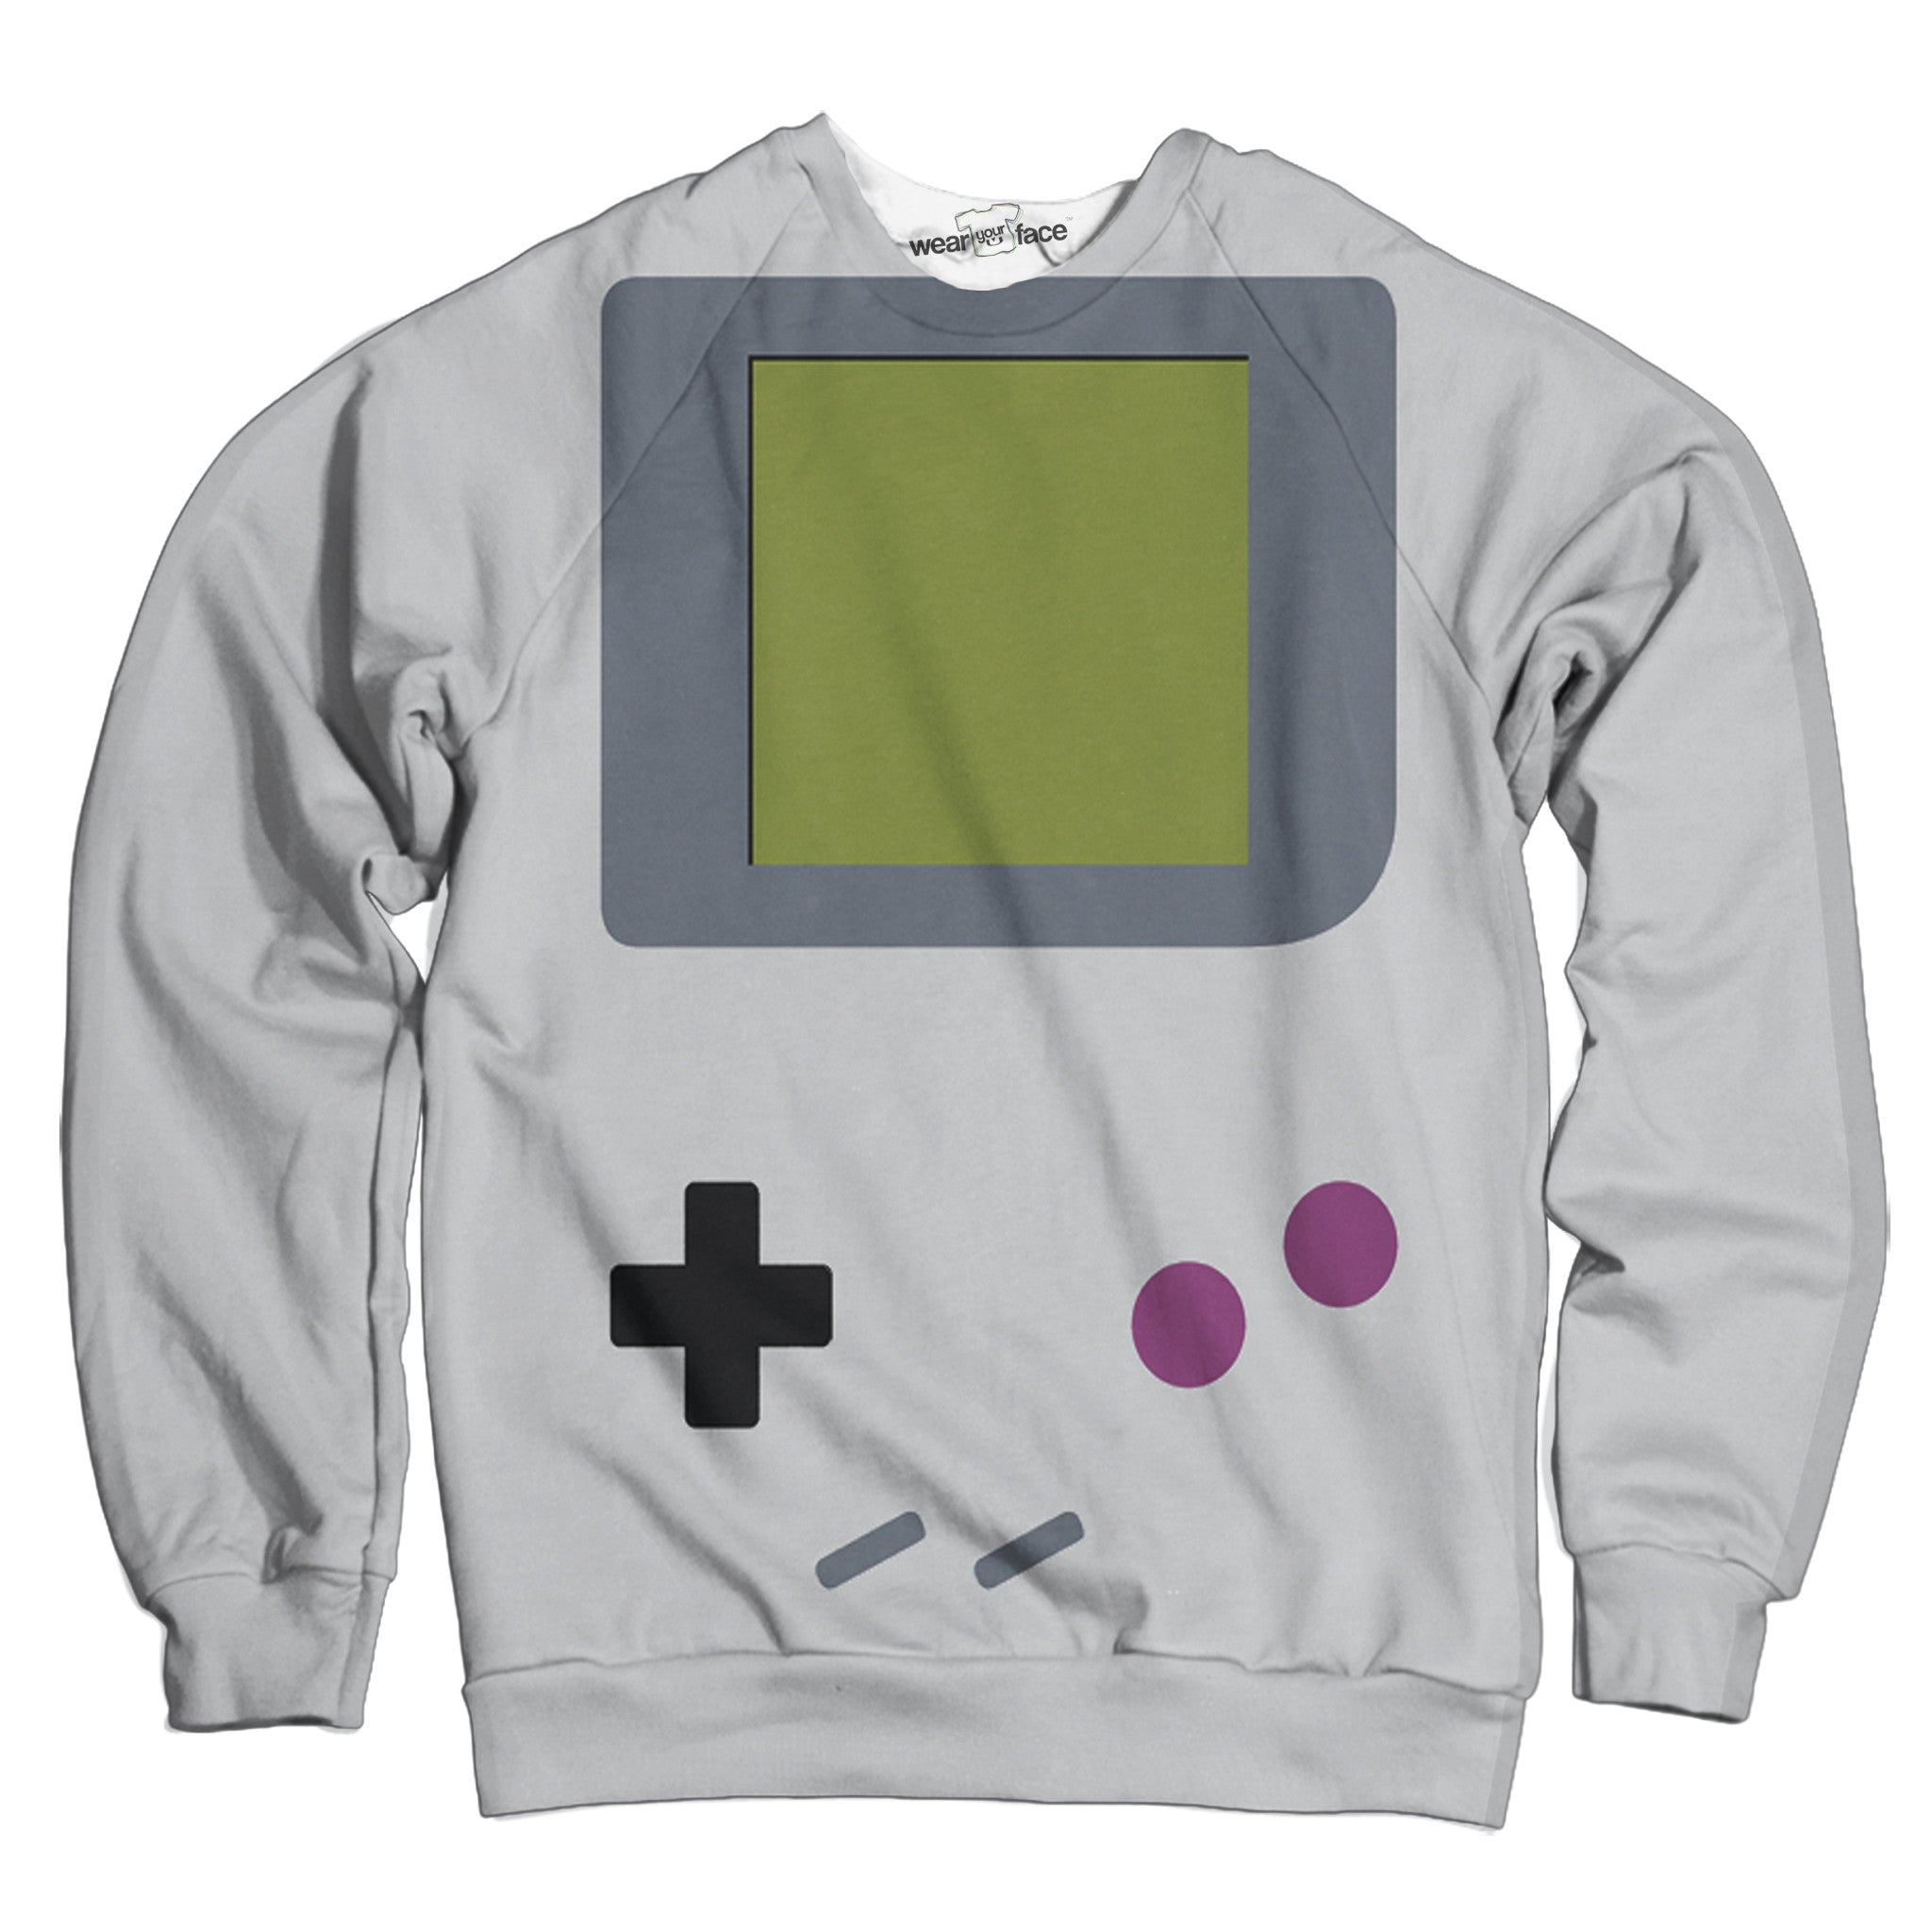 The OG Gameboy Sweatshirt